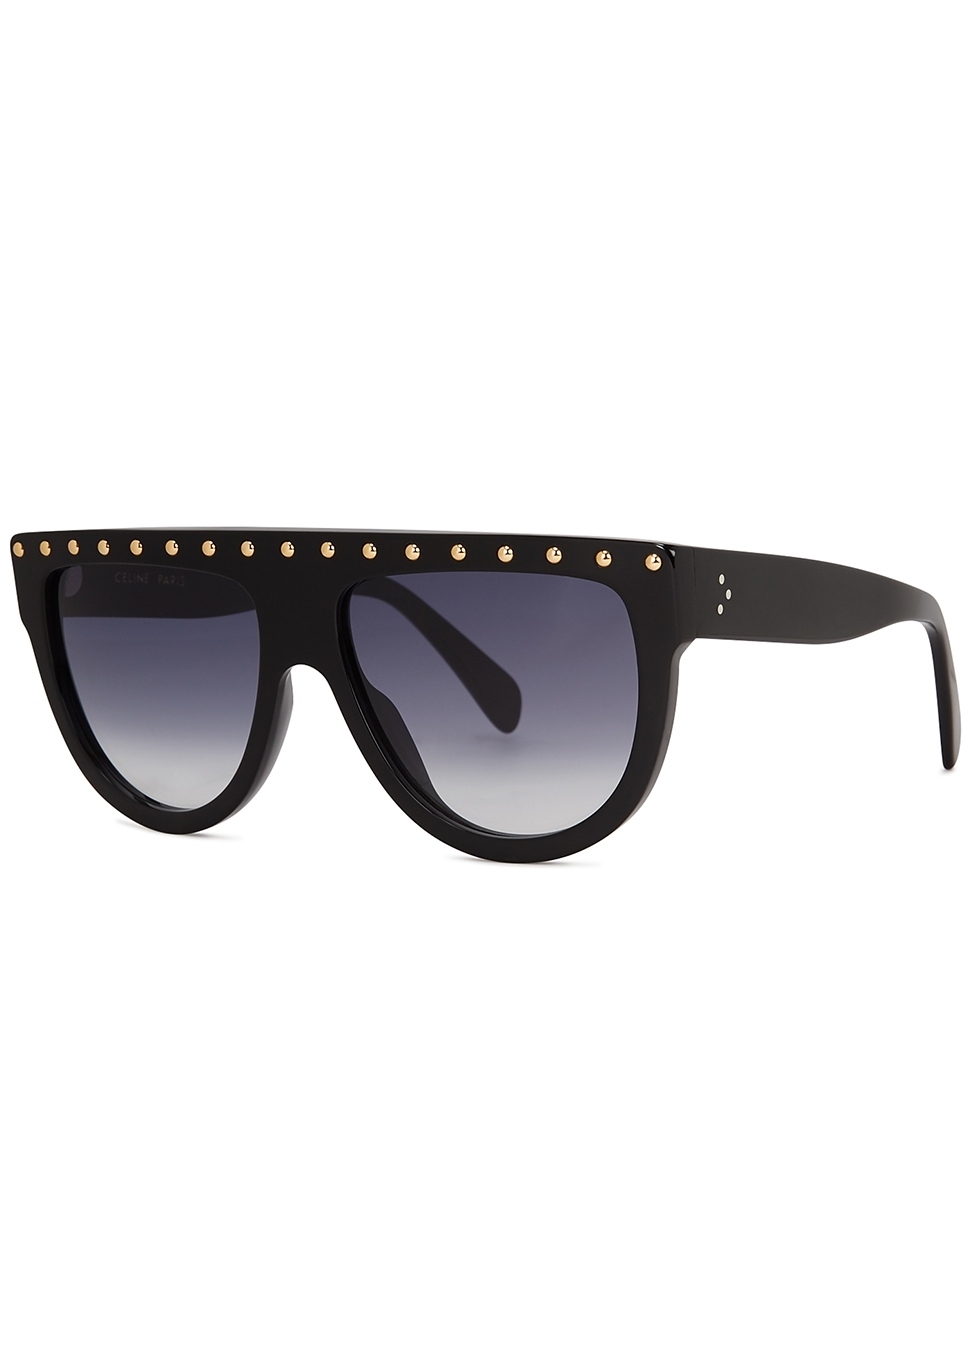 17121d83ec58 Women s Designer Sunglasses and Eyewear - Harvey Nichols